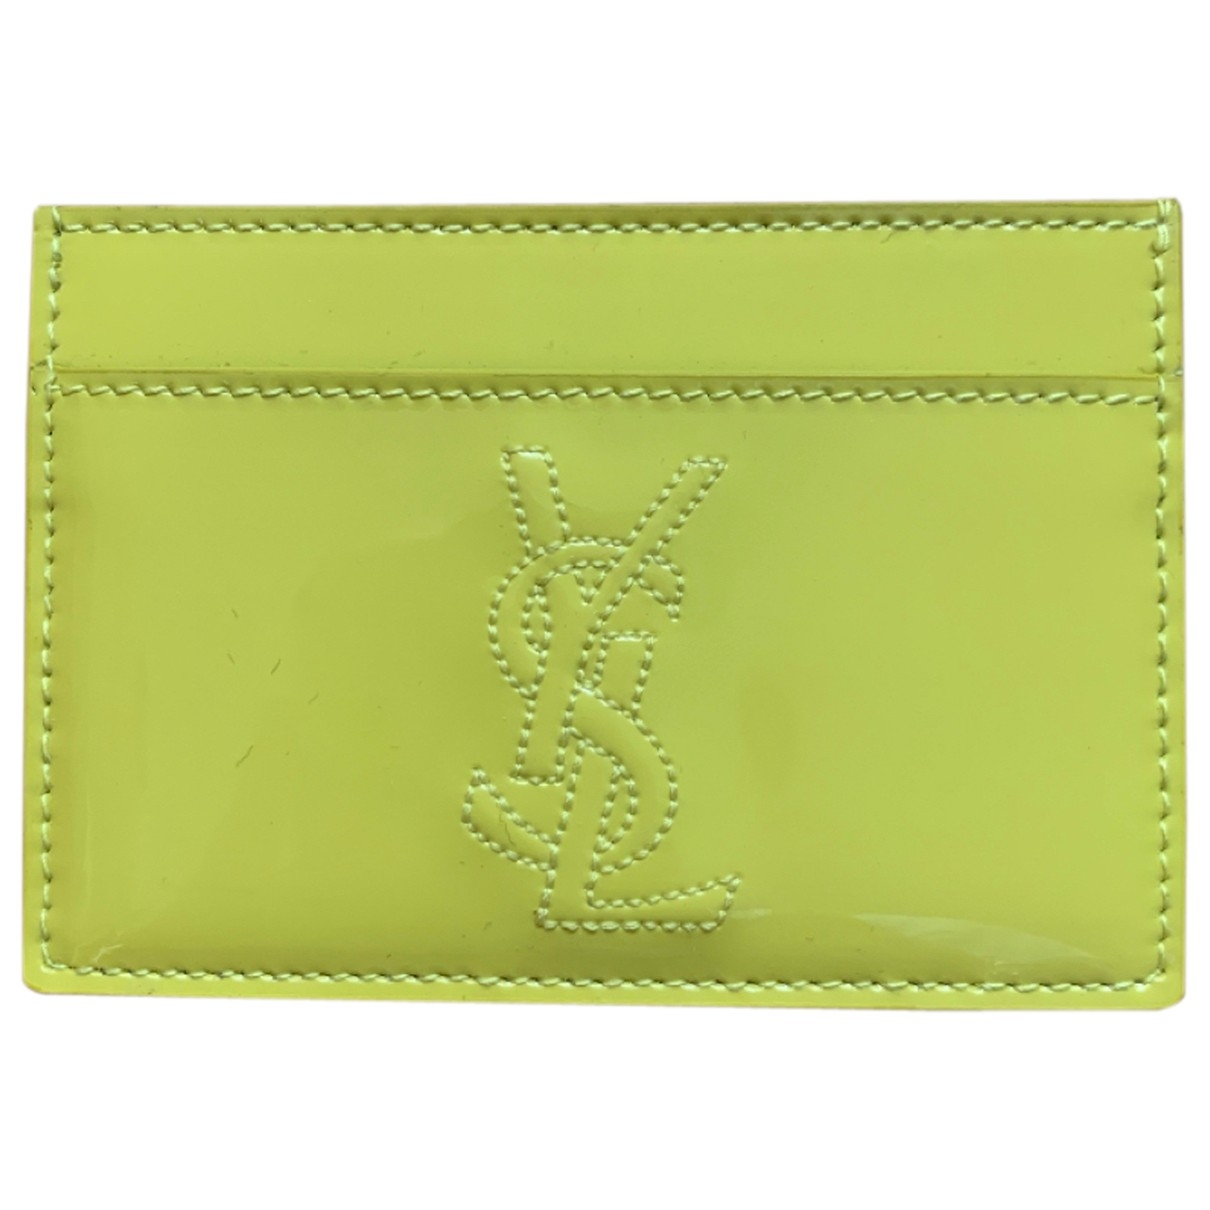 Saint Laurent \N Yellow Patent leather Purses, wallet & cases for Women \N